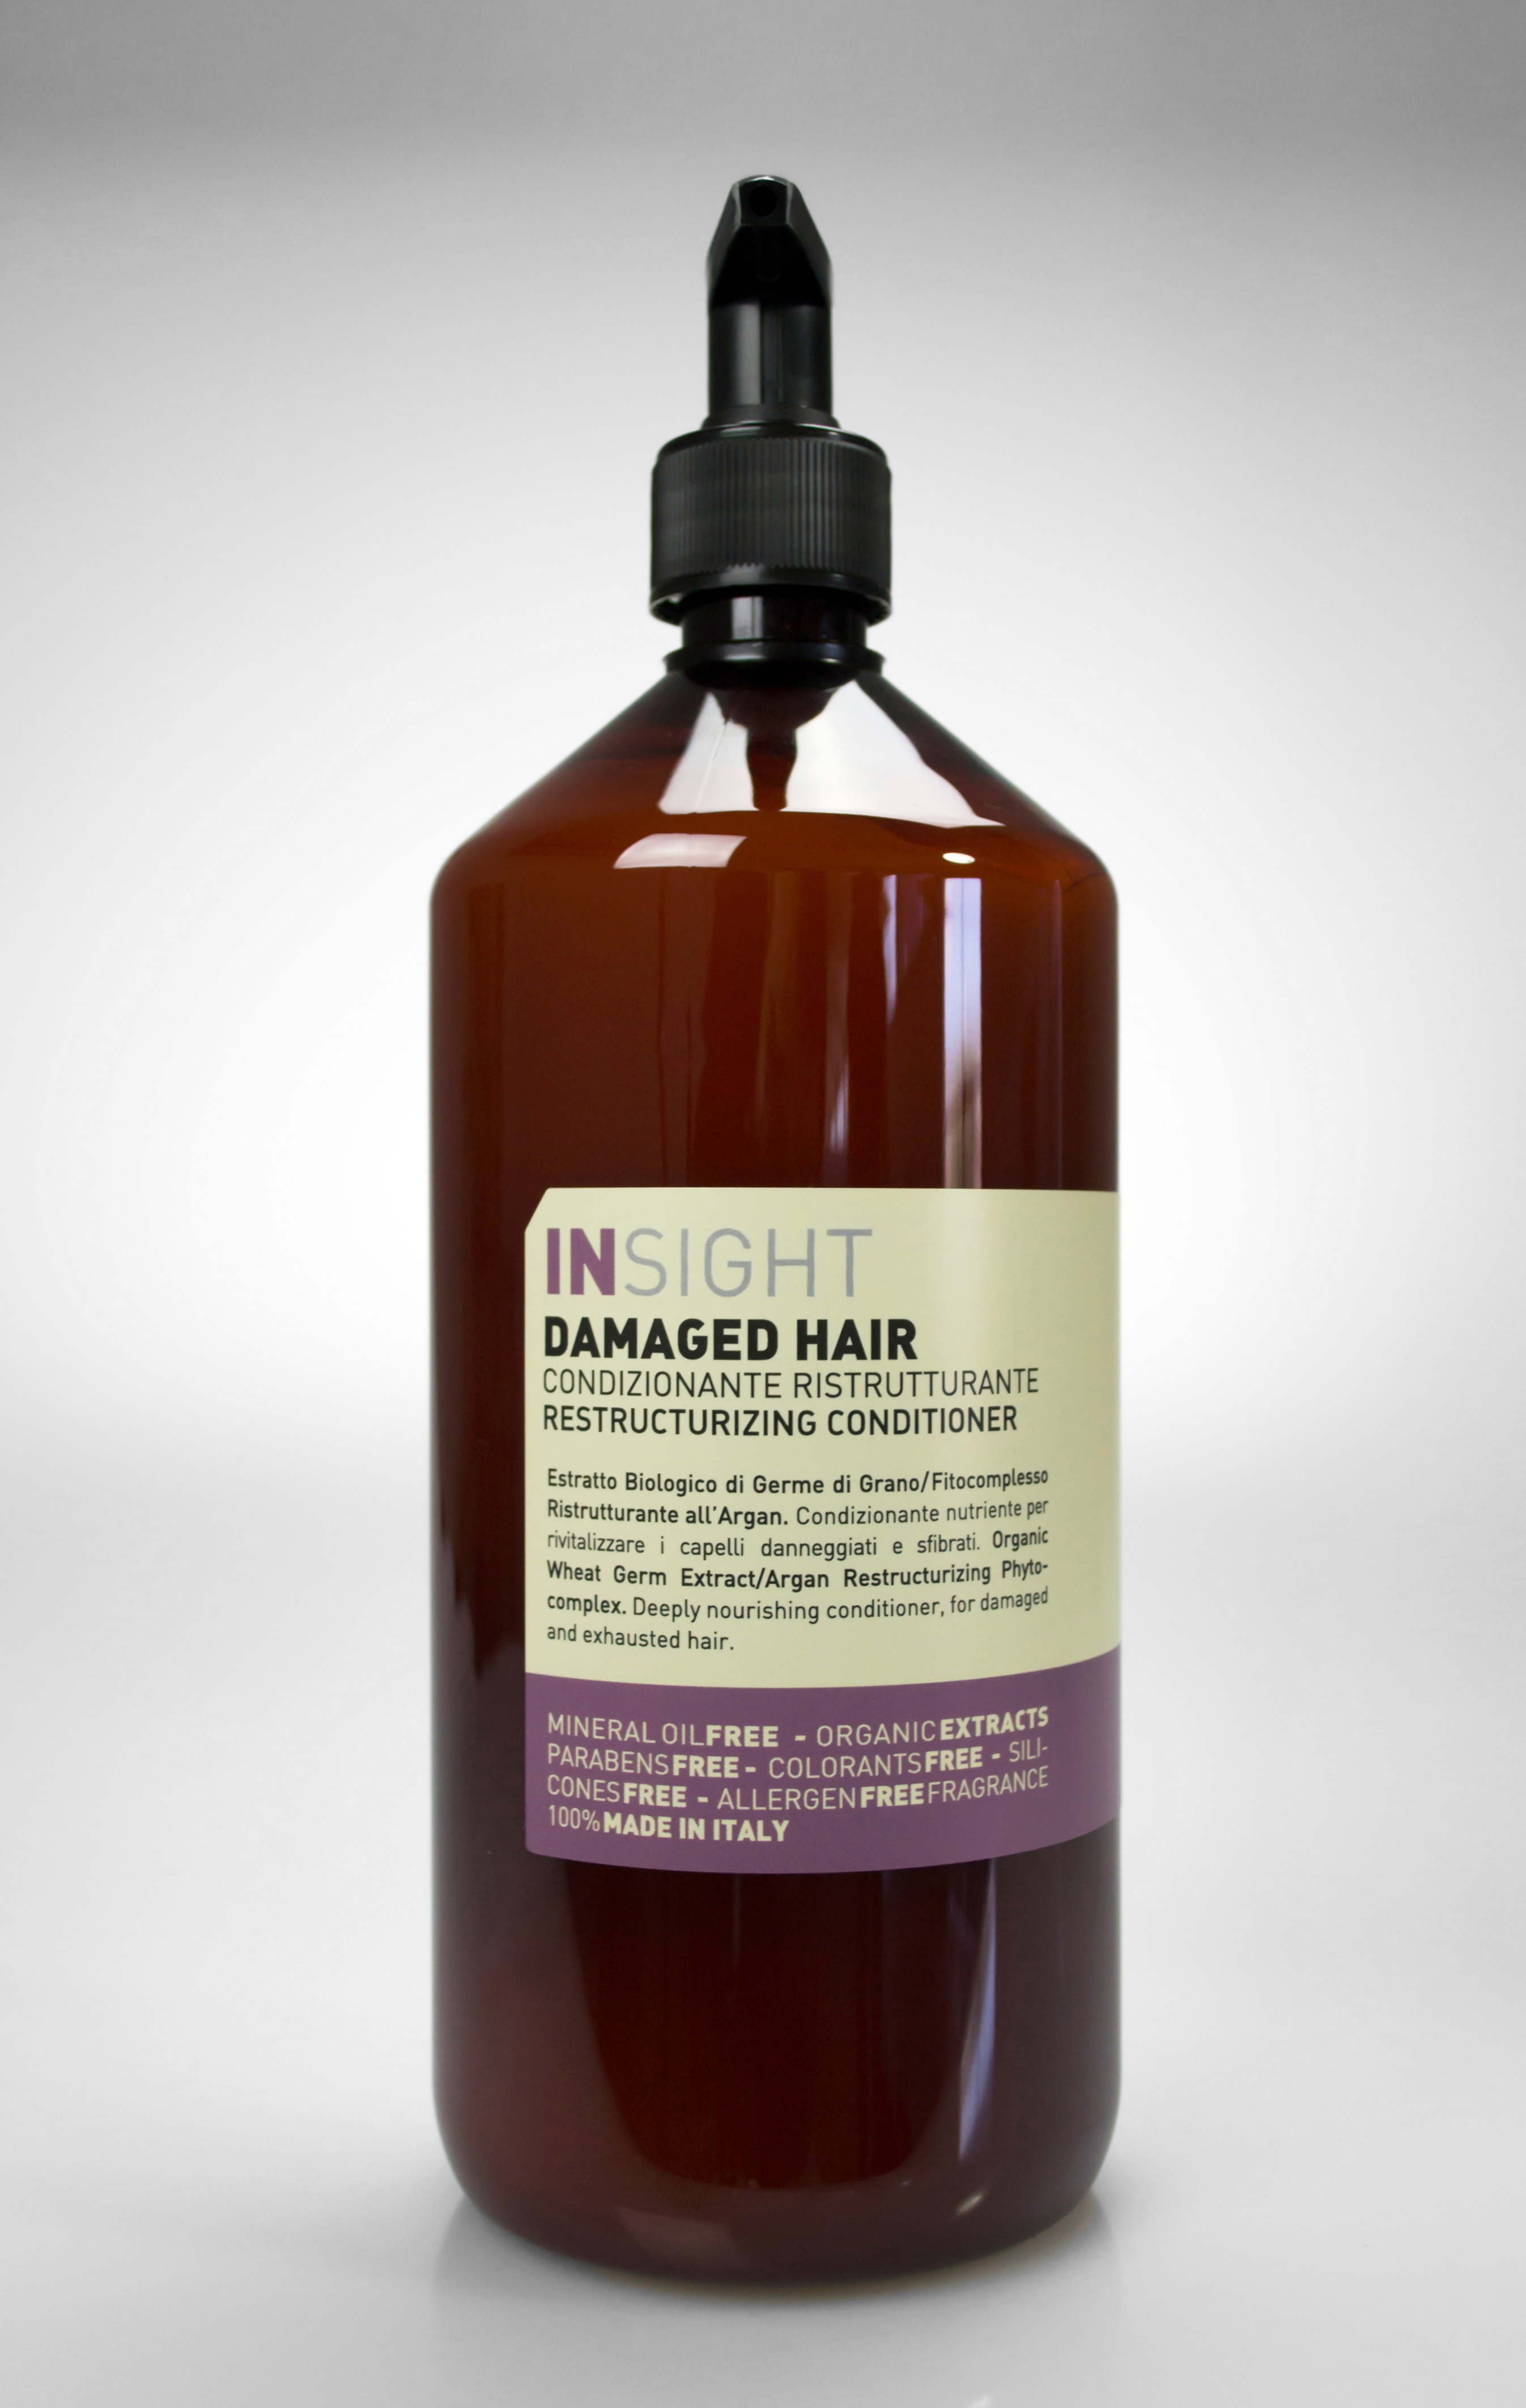 DAMAGED HAIR RESTRUCTURIZING CONDITIONER